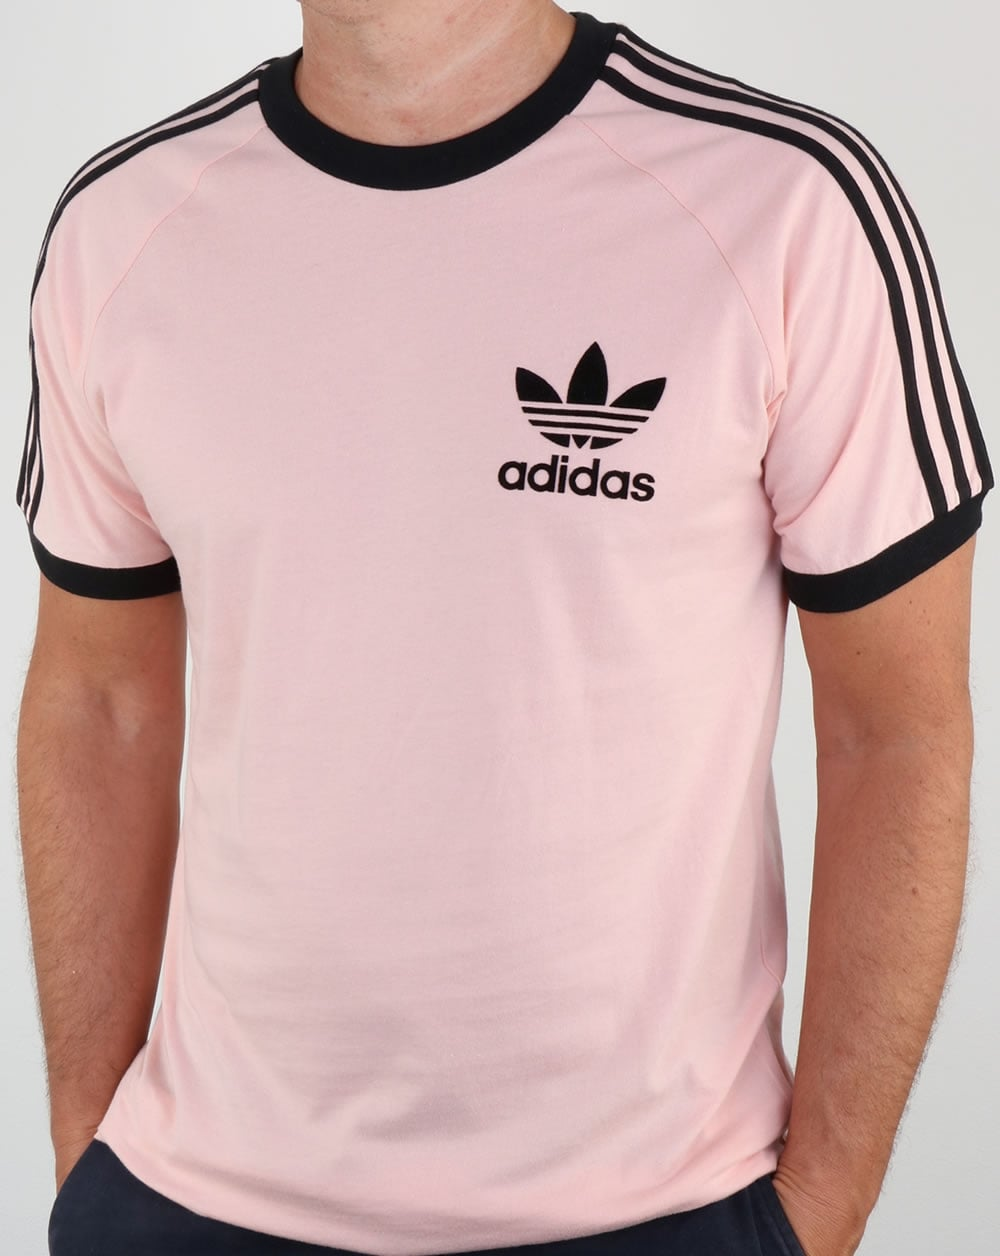 Adidas Originals Retro 3 Stripes T Shirt PinkBlack